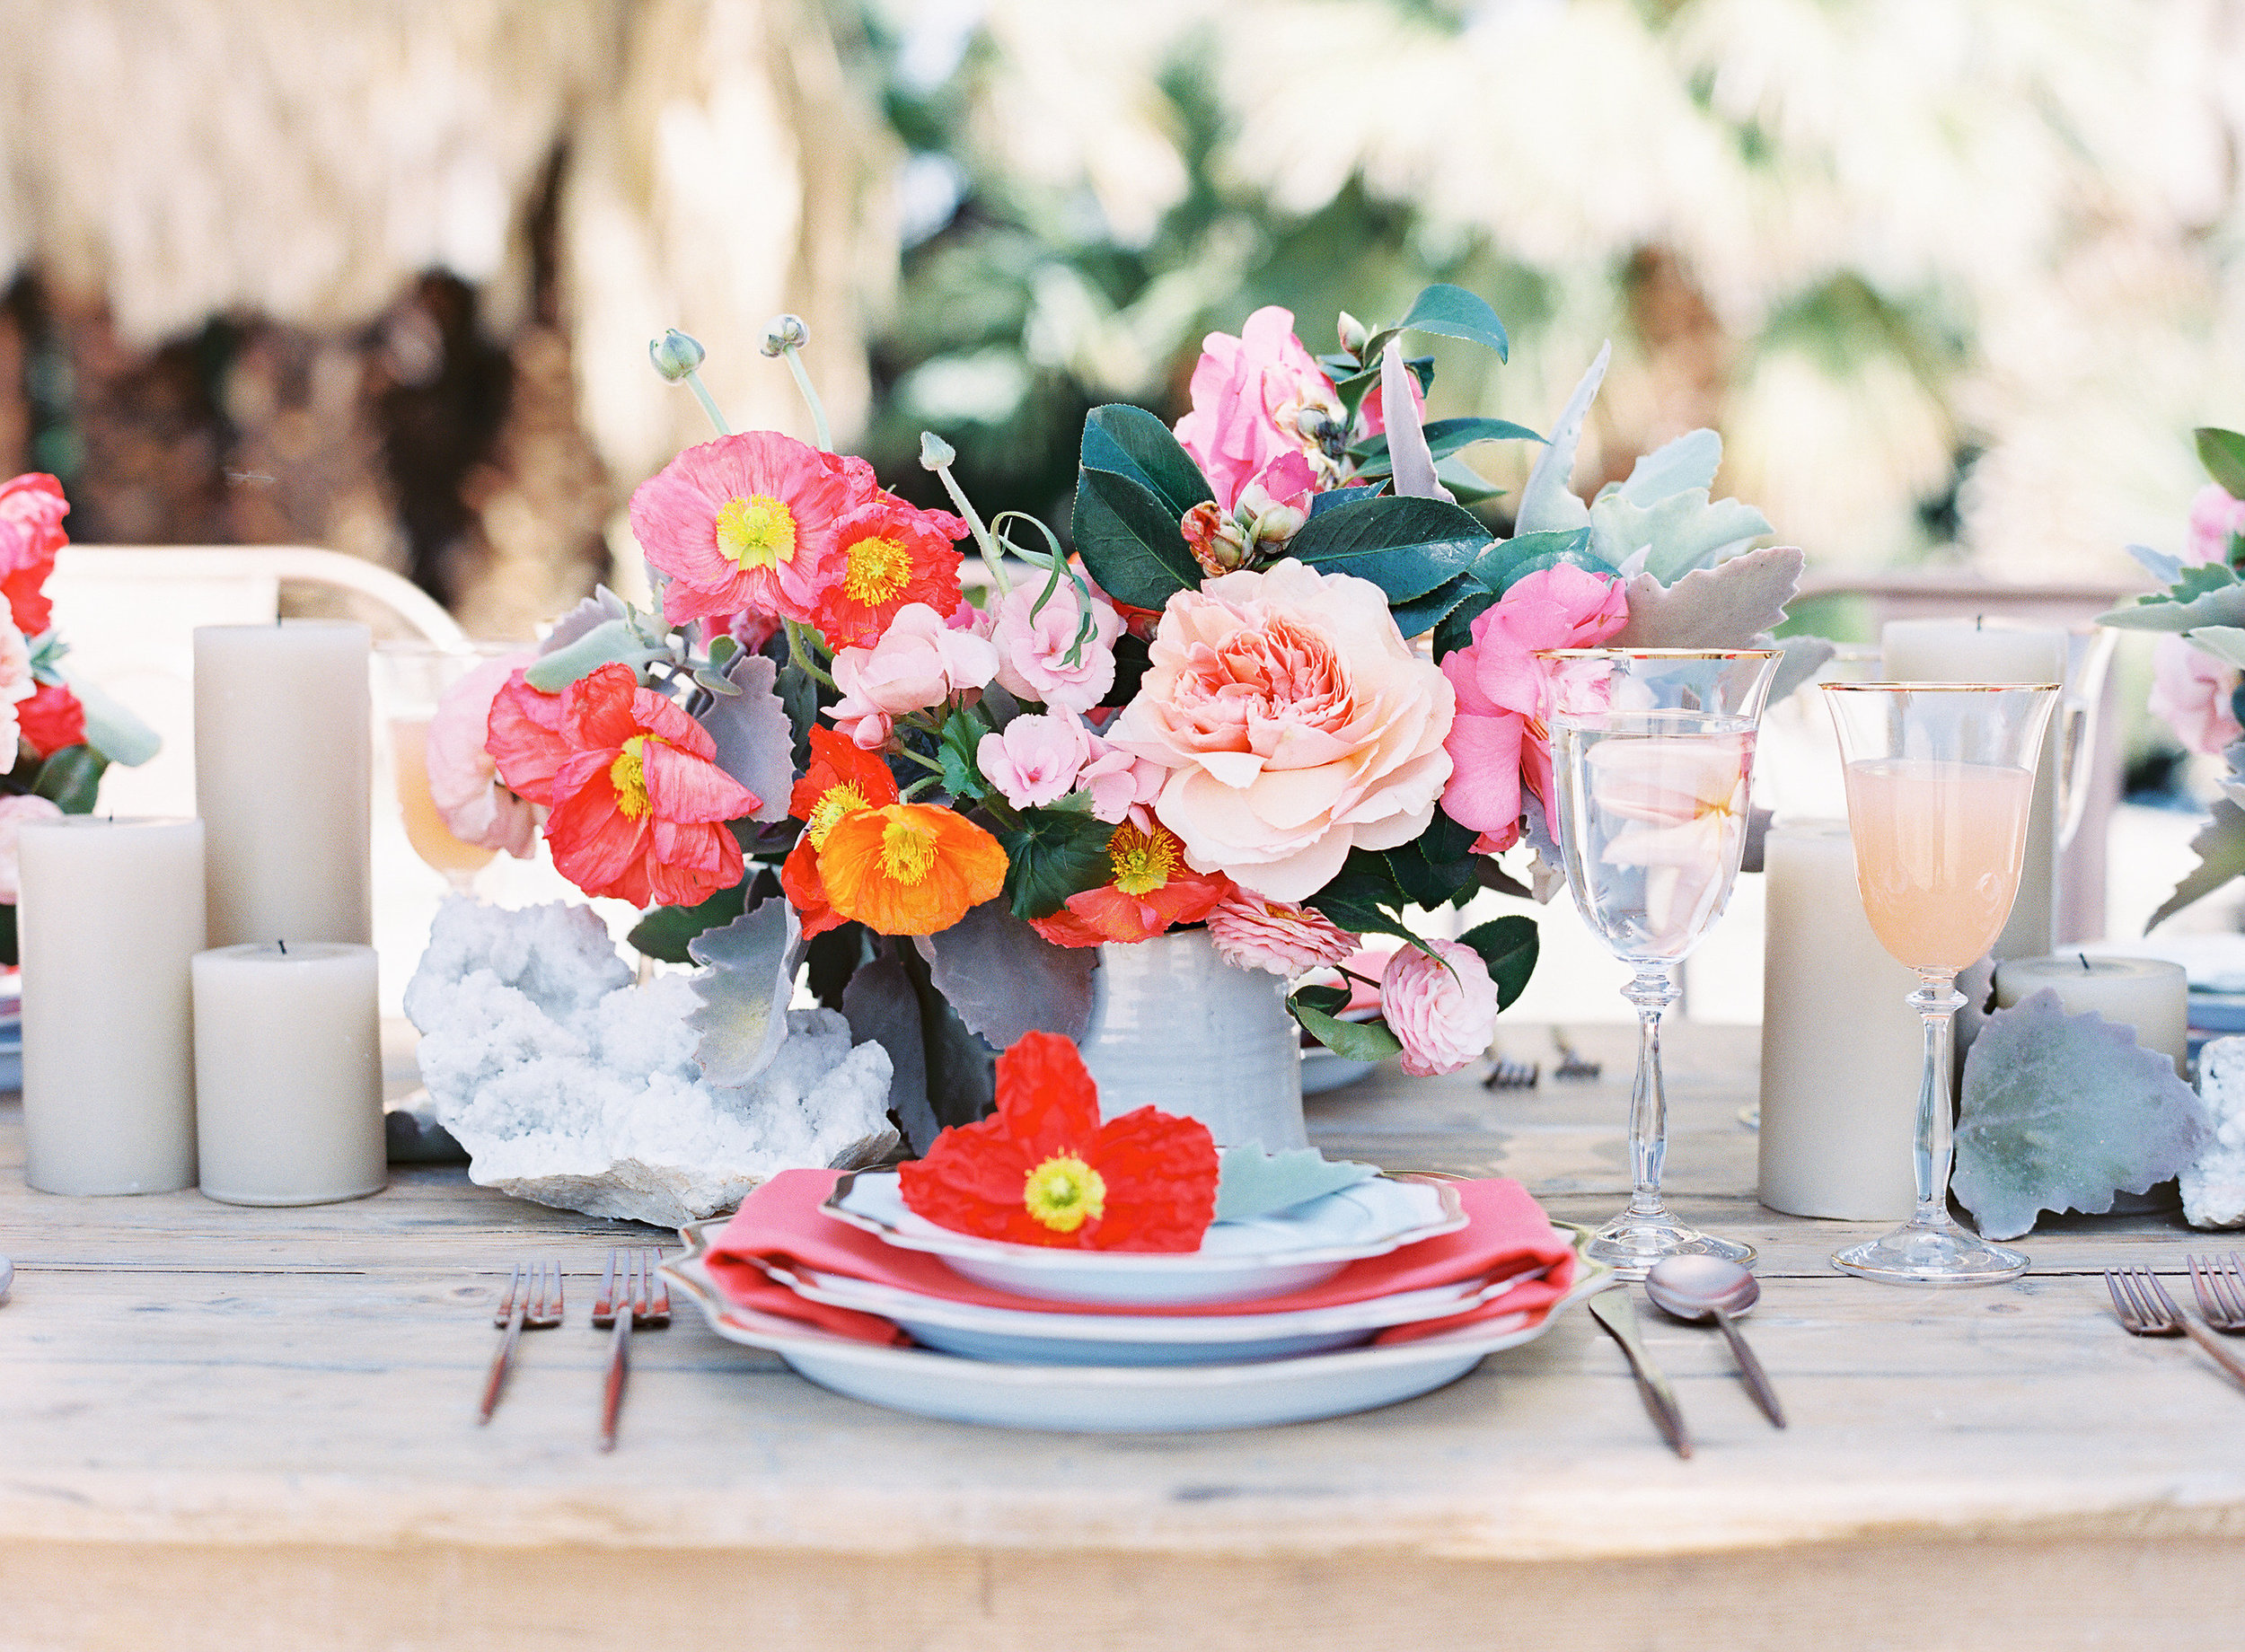 Tablescape_©_Oliver_Fly_Photography_14.jpg